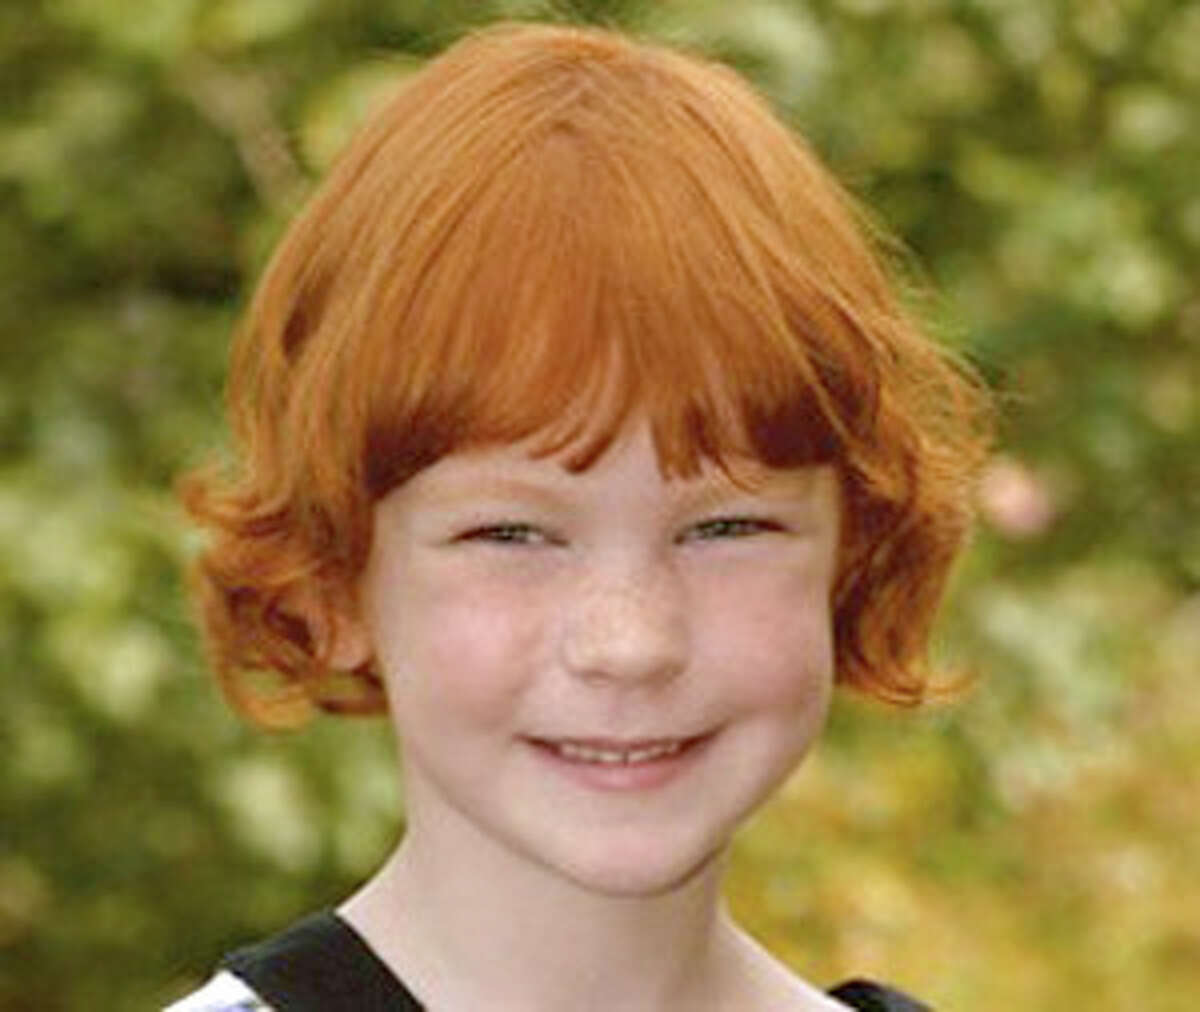 Catherine Hubbard died in the Sandy Hook Elementary School shooting in Newtown, Conn. on Friday, Dec. 14, 2012.